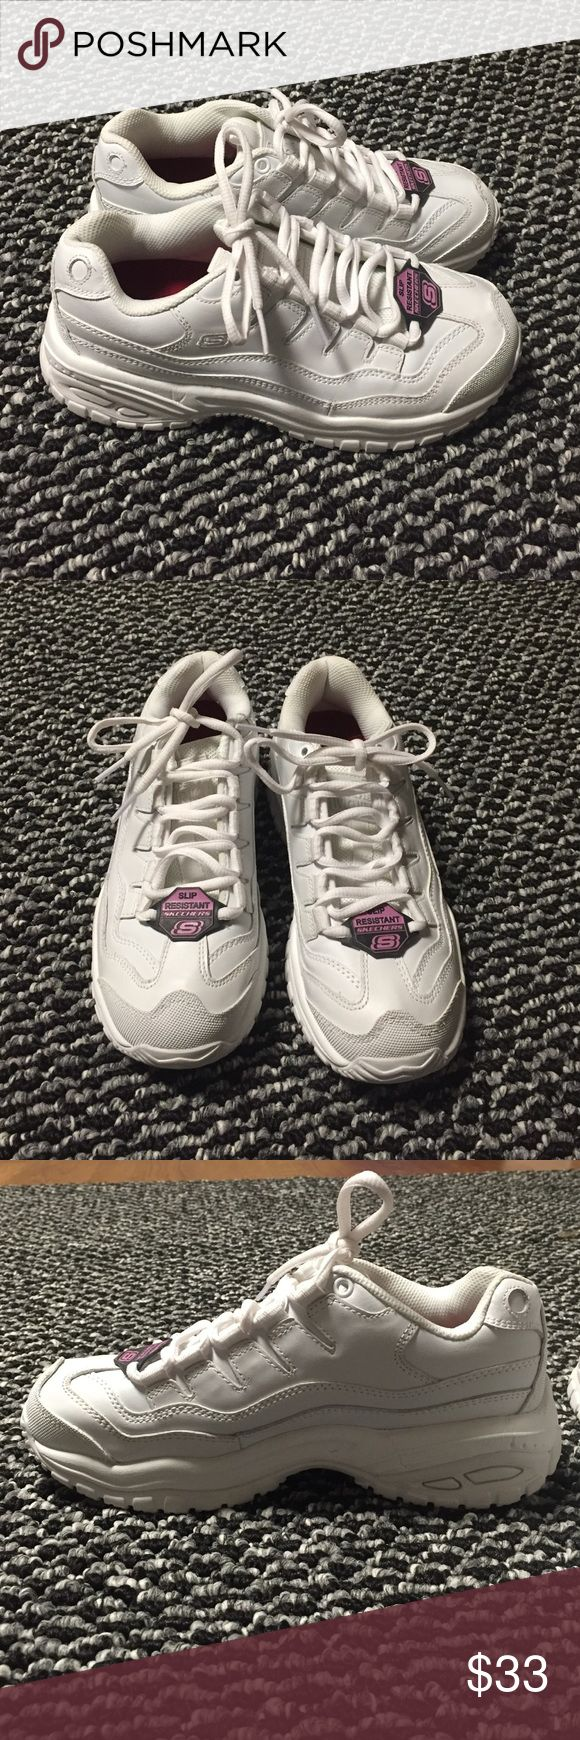 White Skechers non slip white work shoes Size 6.5 Skechers white no slip work shoes. Never worn, only tried on. Still has original slip resistant tag on each shoe. Great for Hooter's girls or being one for Halloween. Skechers Shoes Sneakers